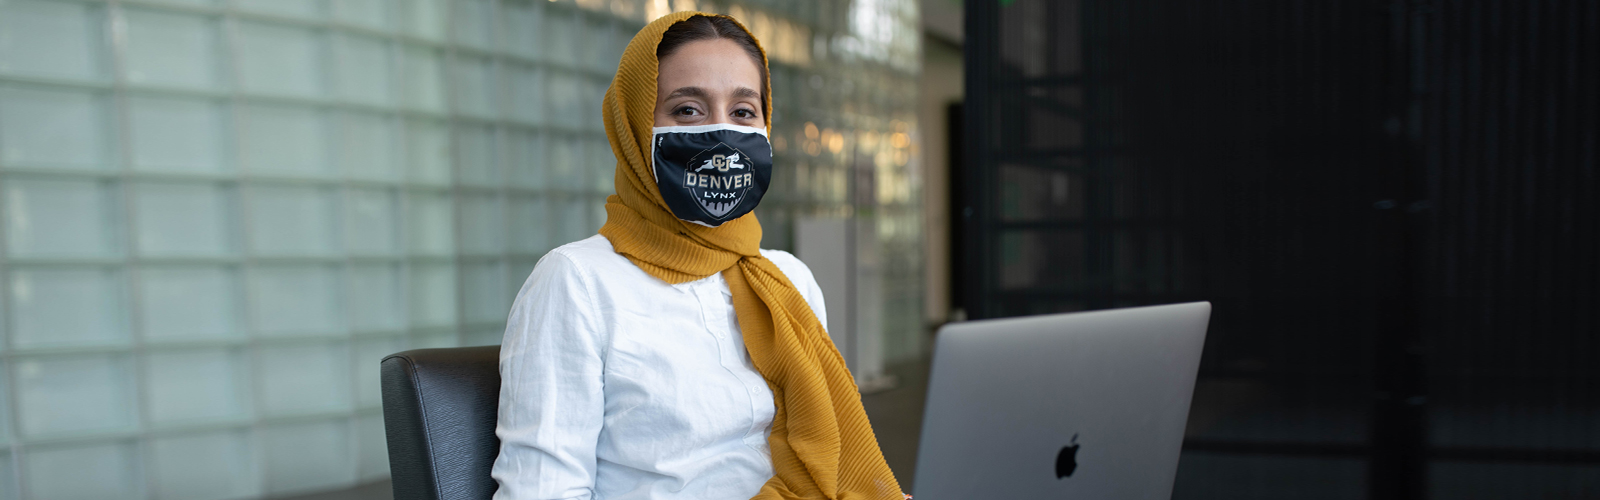 Student wearing face covering